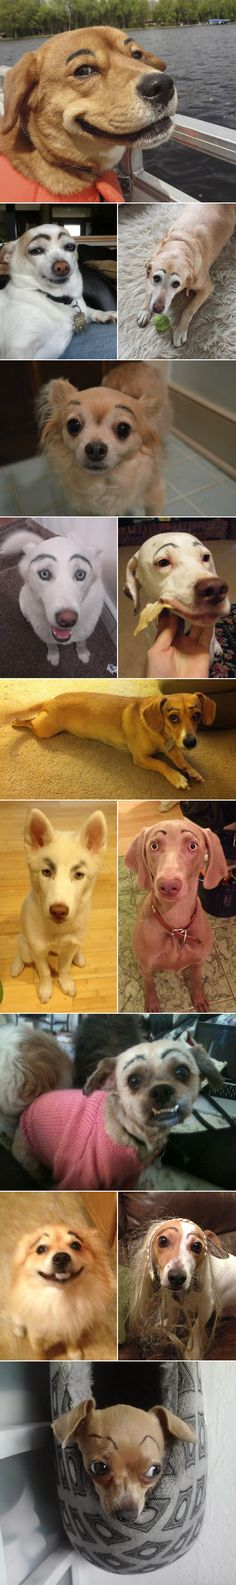 Dogs with eyebrows (latest internet trend)